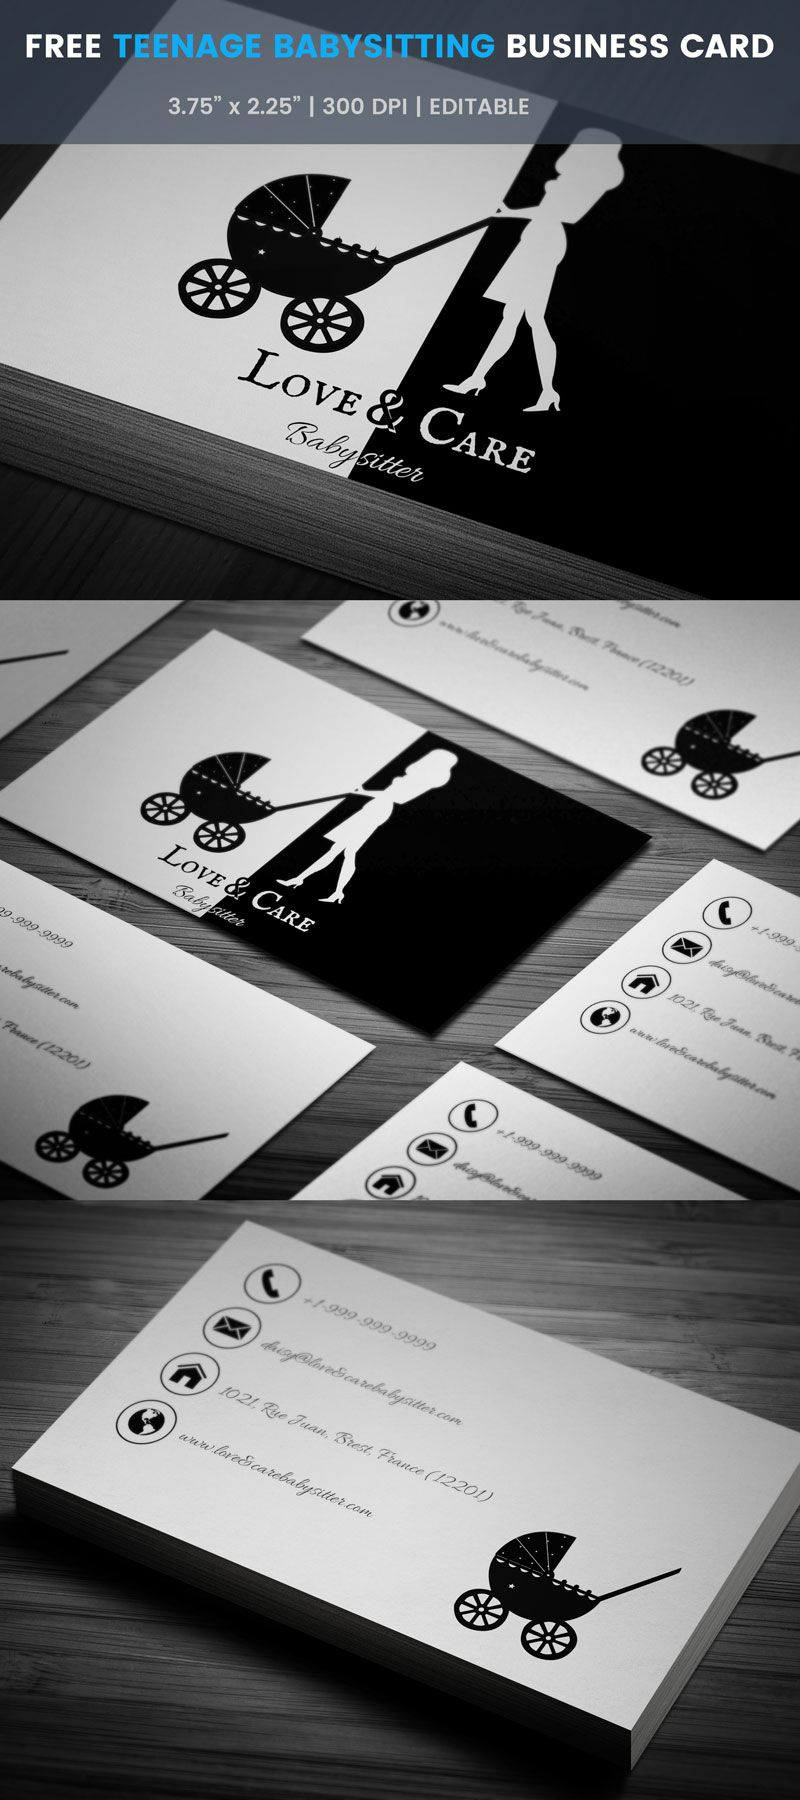 Daycare babysitting business card full preview free business daycare babysitting business card full preview fbccfo Gallery